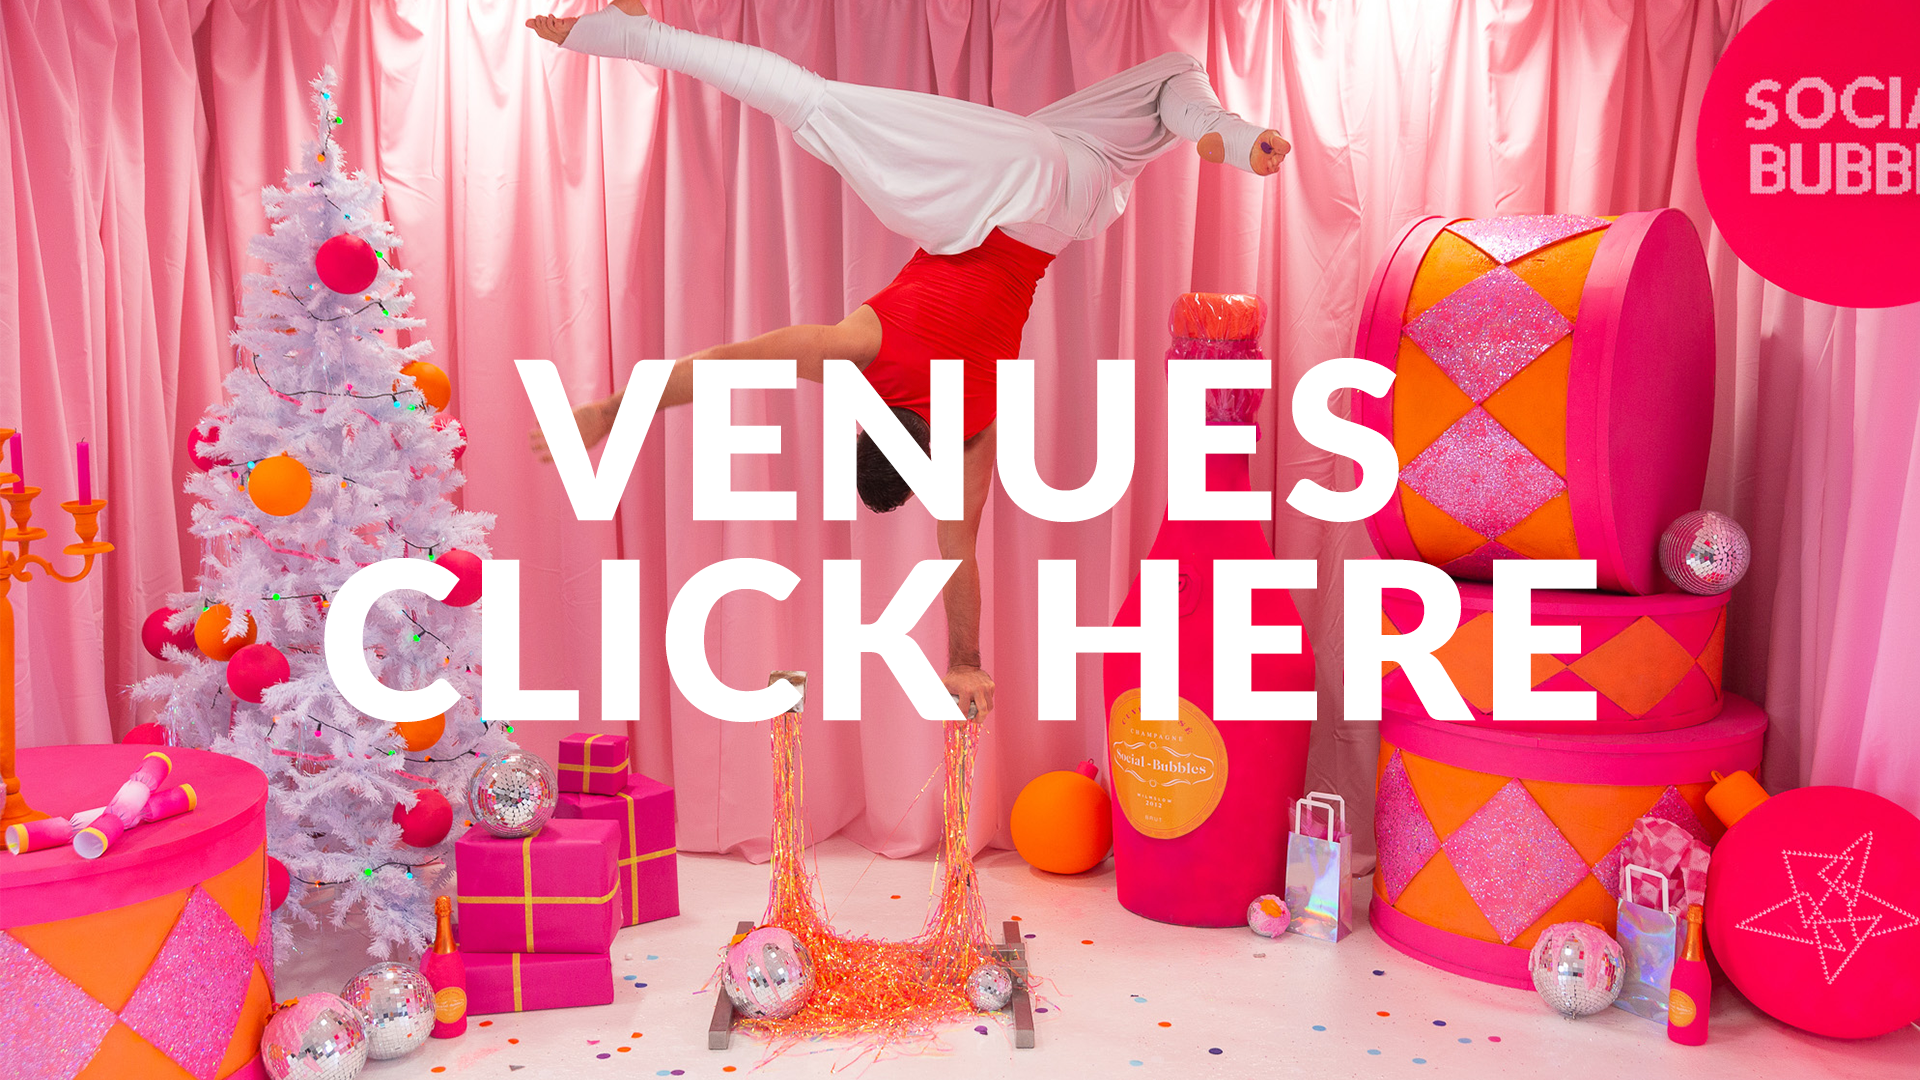 Make Events | Corporate and Virtual Events Company Manchester | Venues Click Here flyer